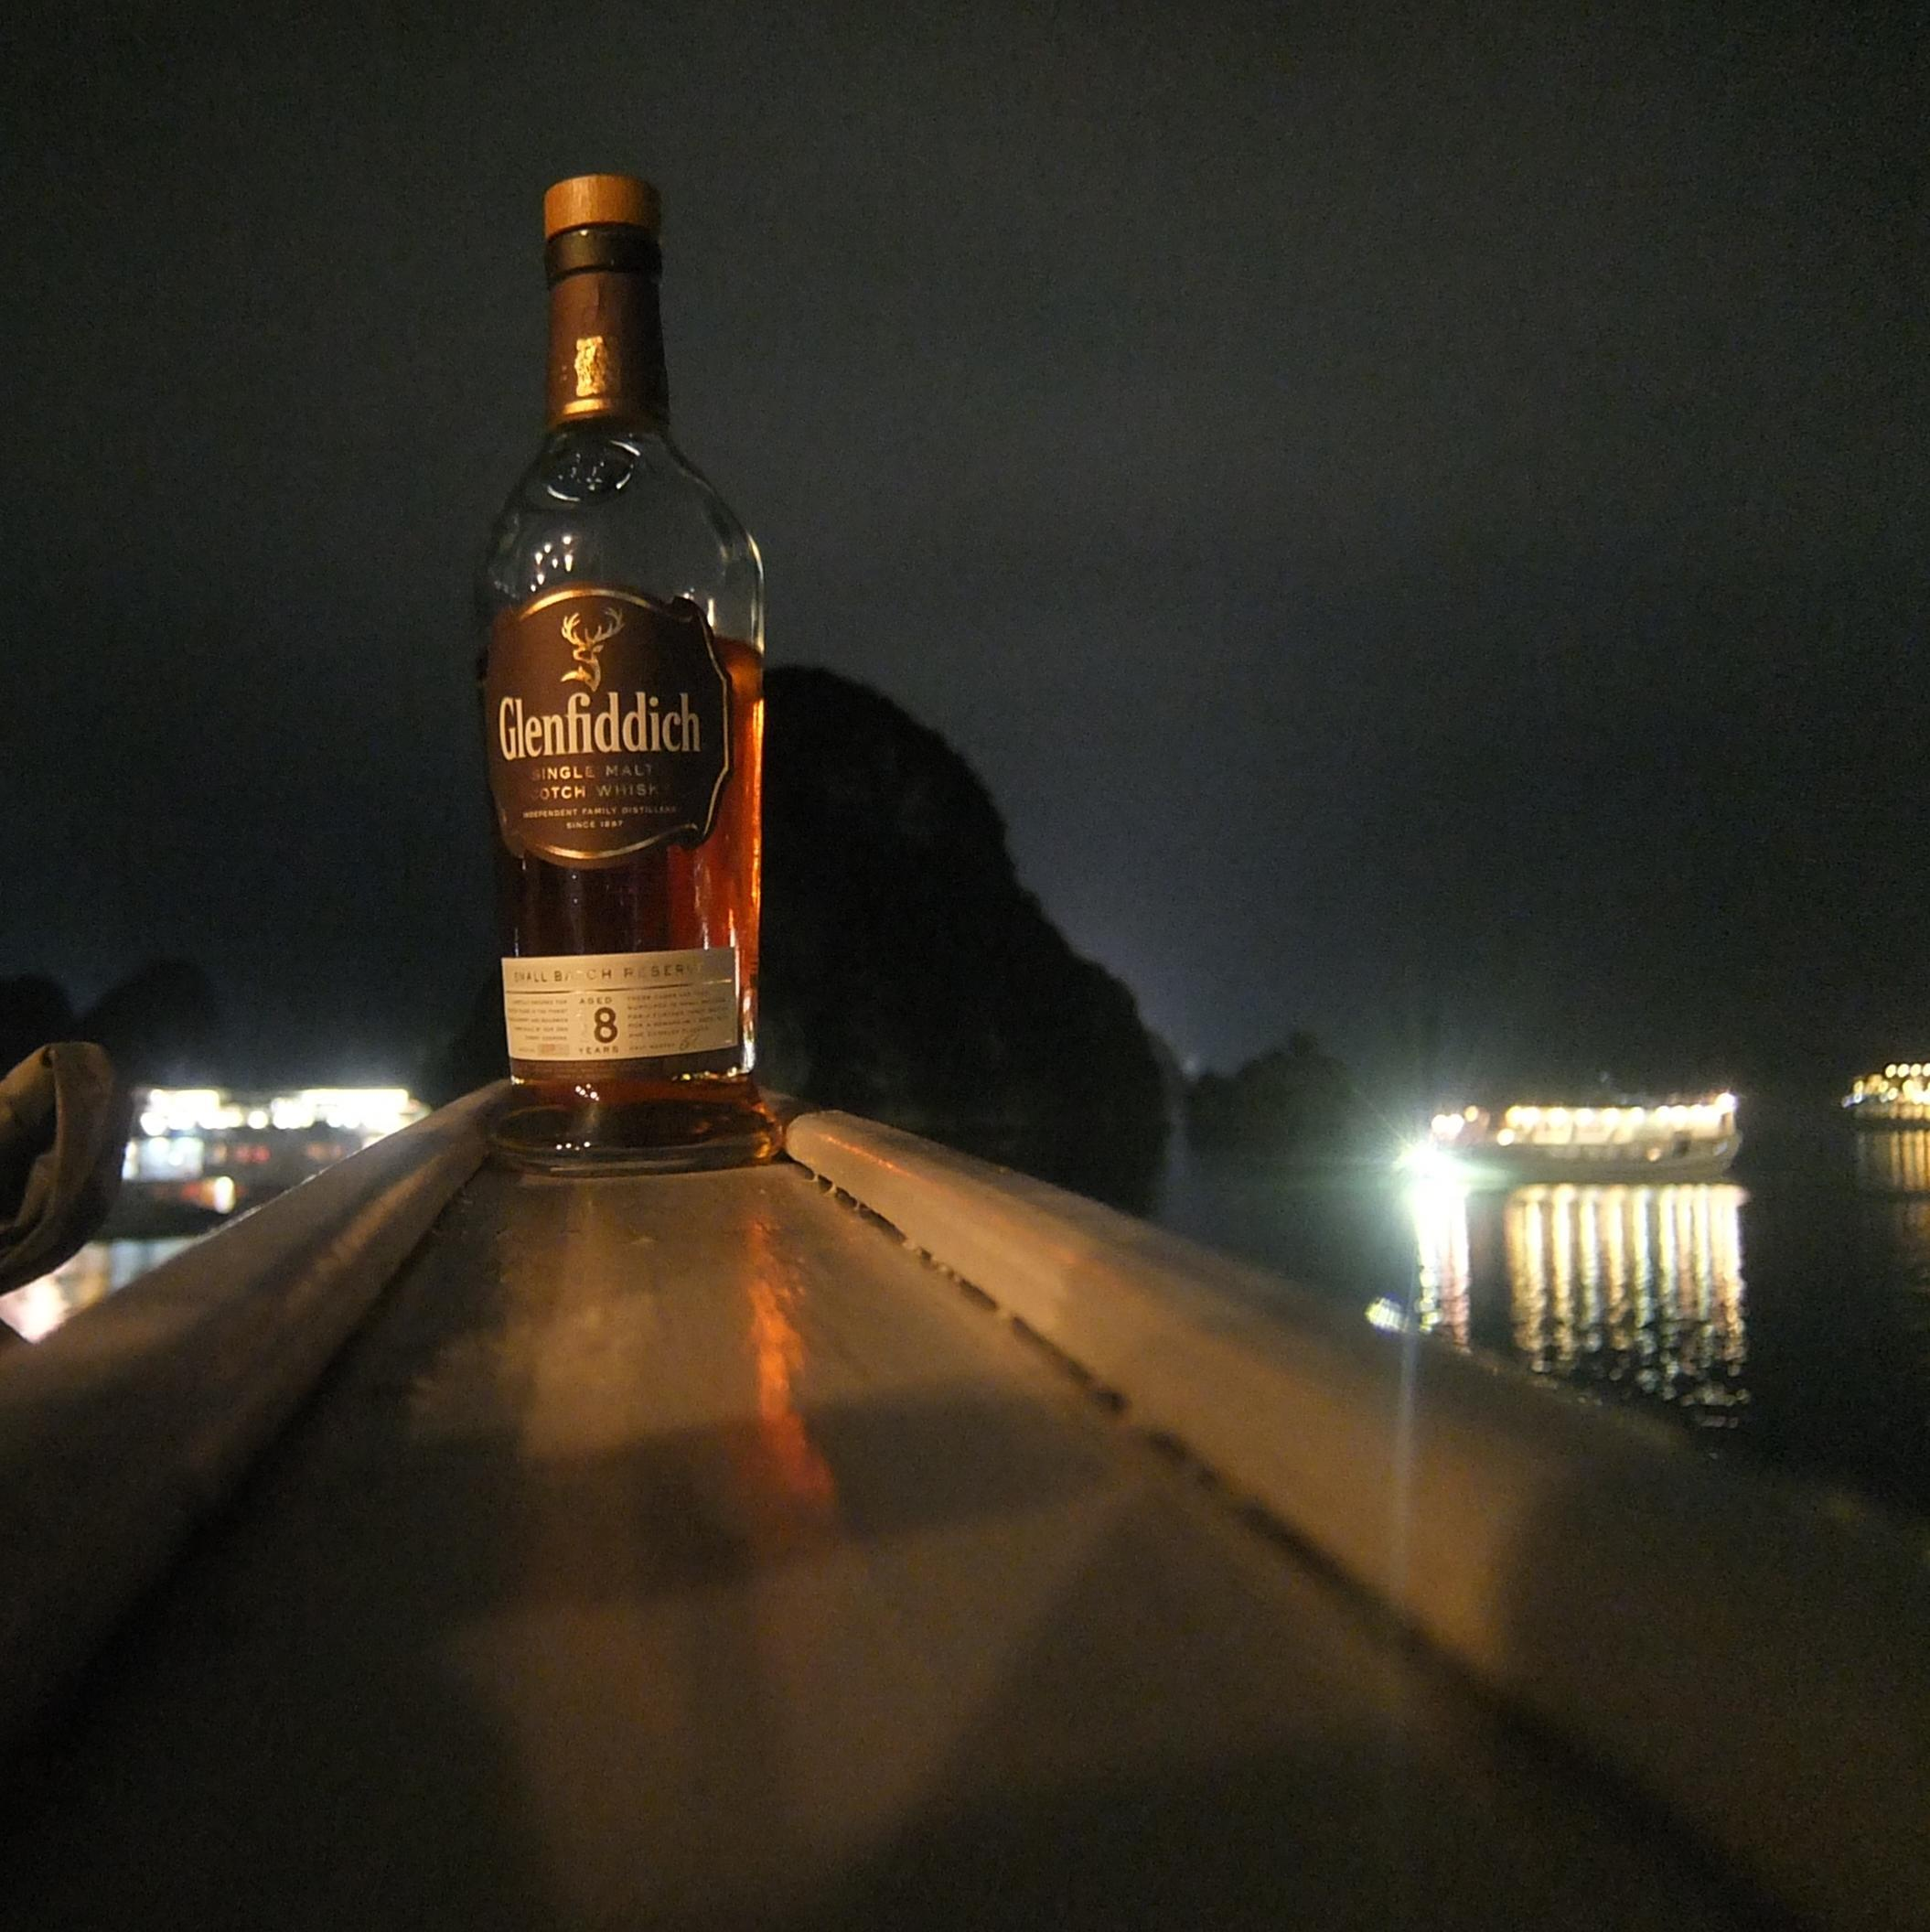 Glenfiddich Recollection – Add Your Favourite Glenfiddich Photos